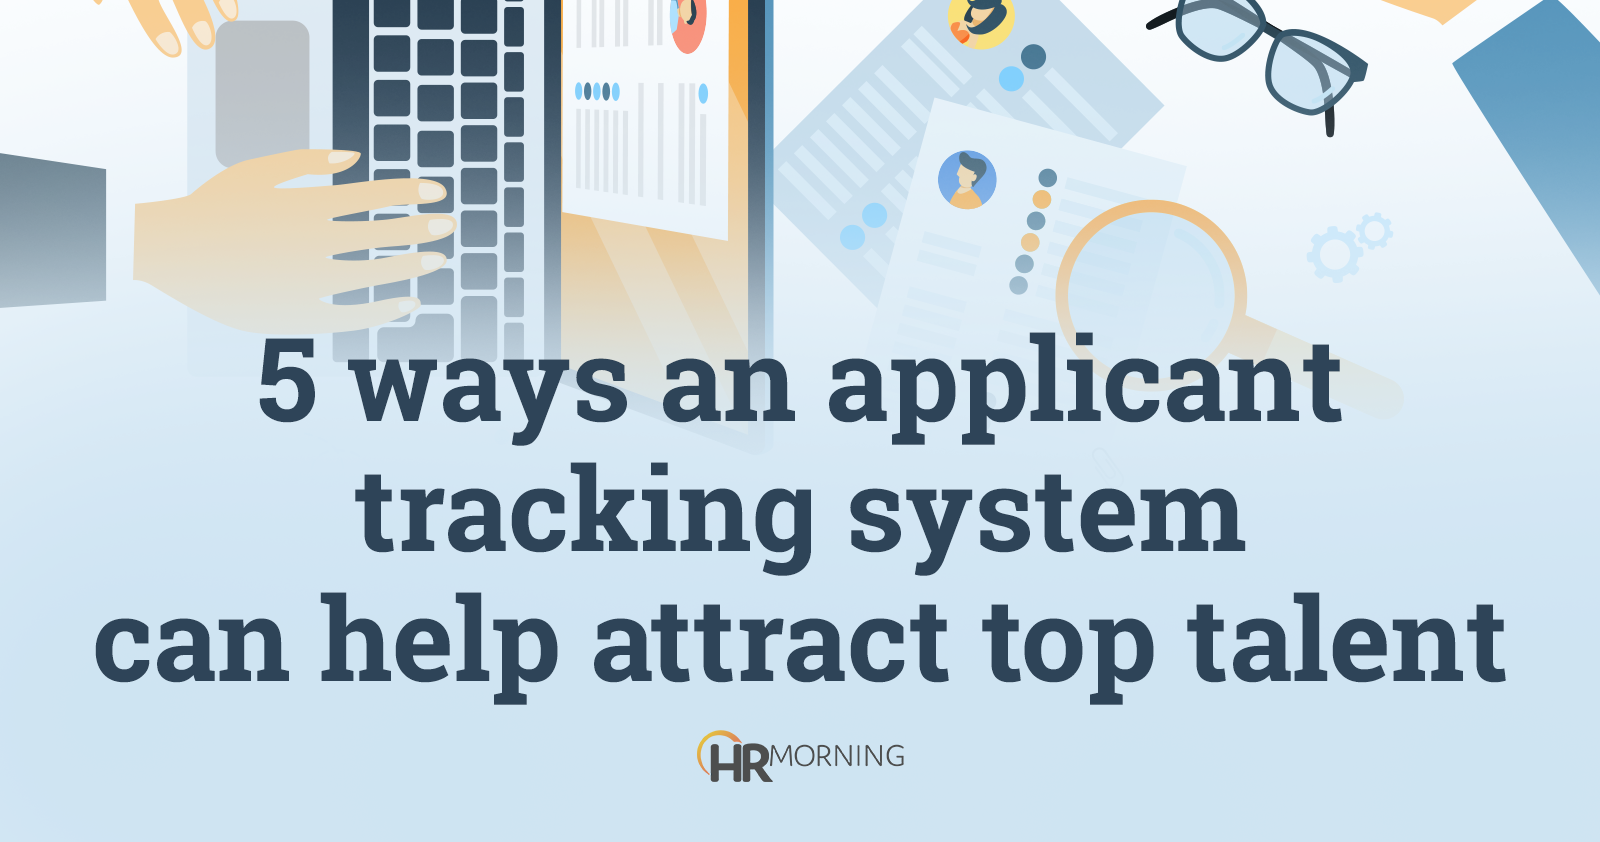 5 ways an applicant tracking system can help attract top talent